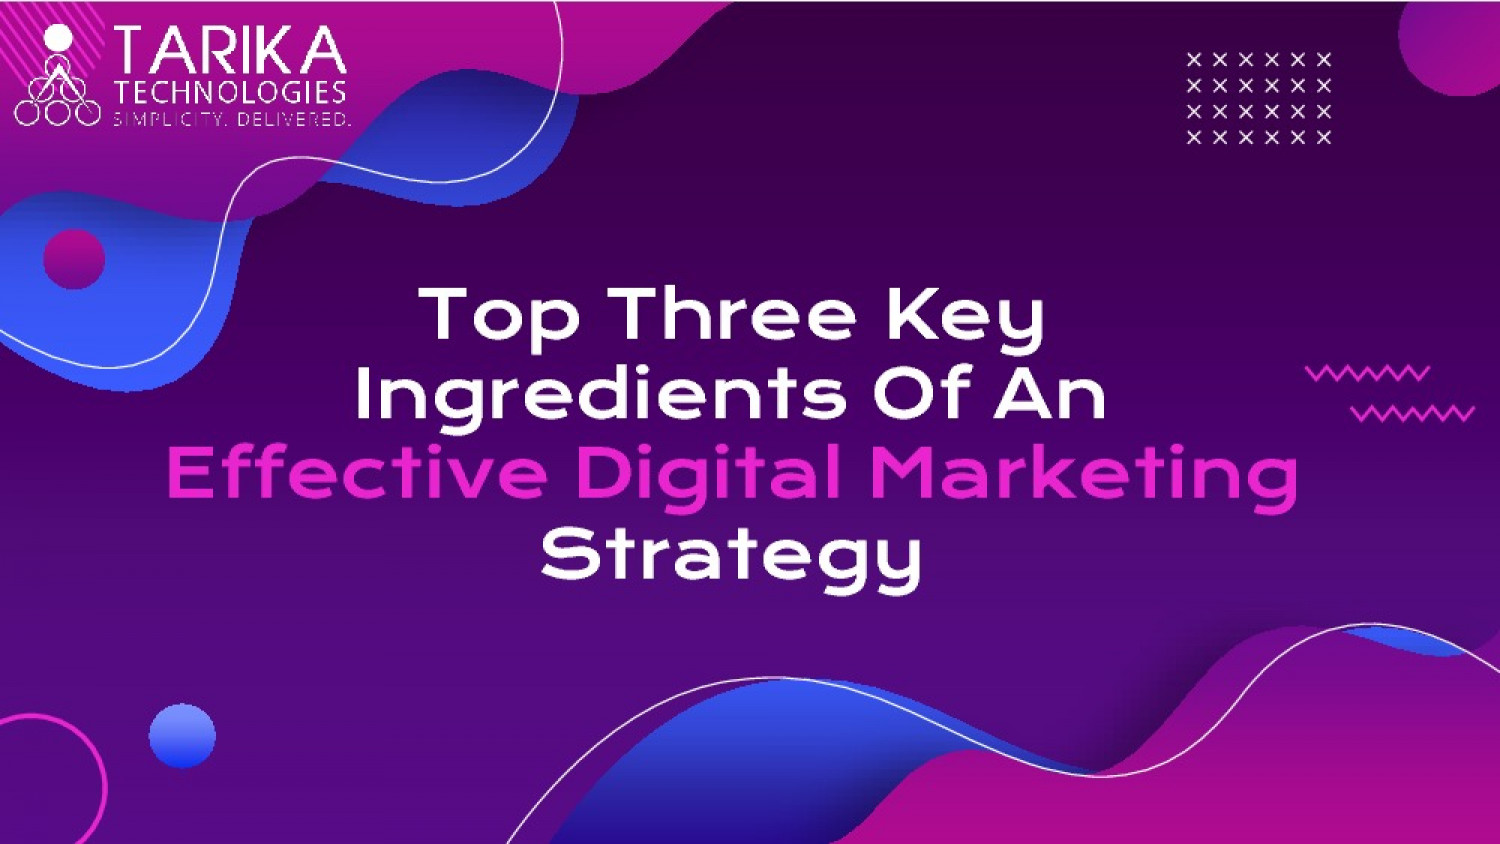 Top Three Key Ingredients Of An Effective Digital Marketing Strategy Infographic